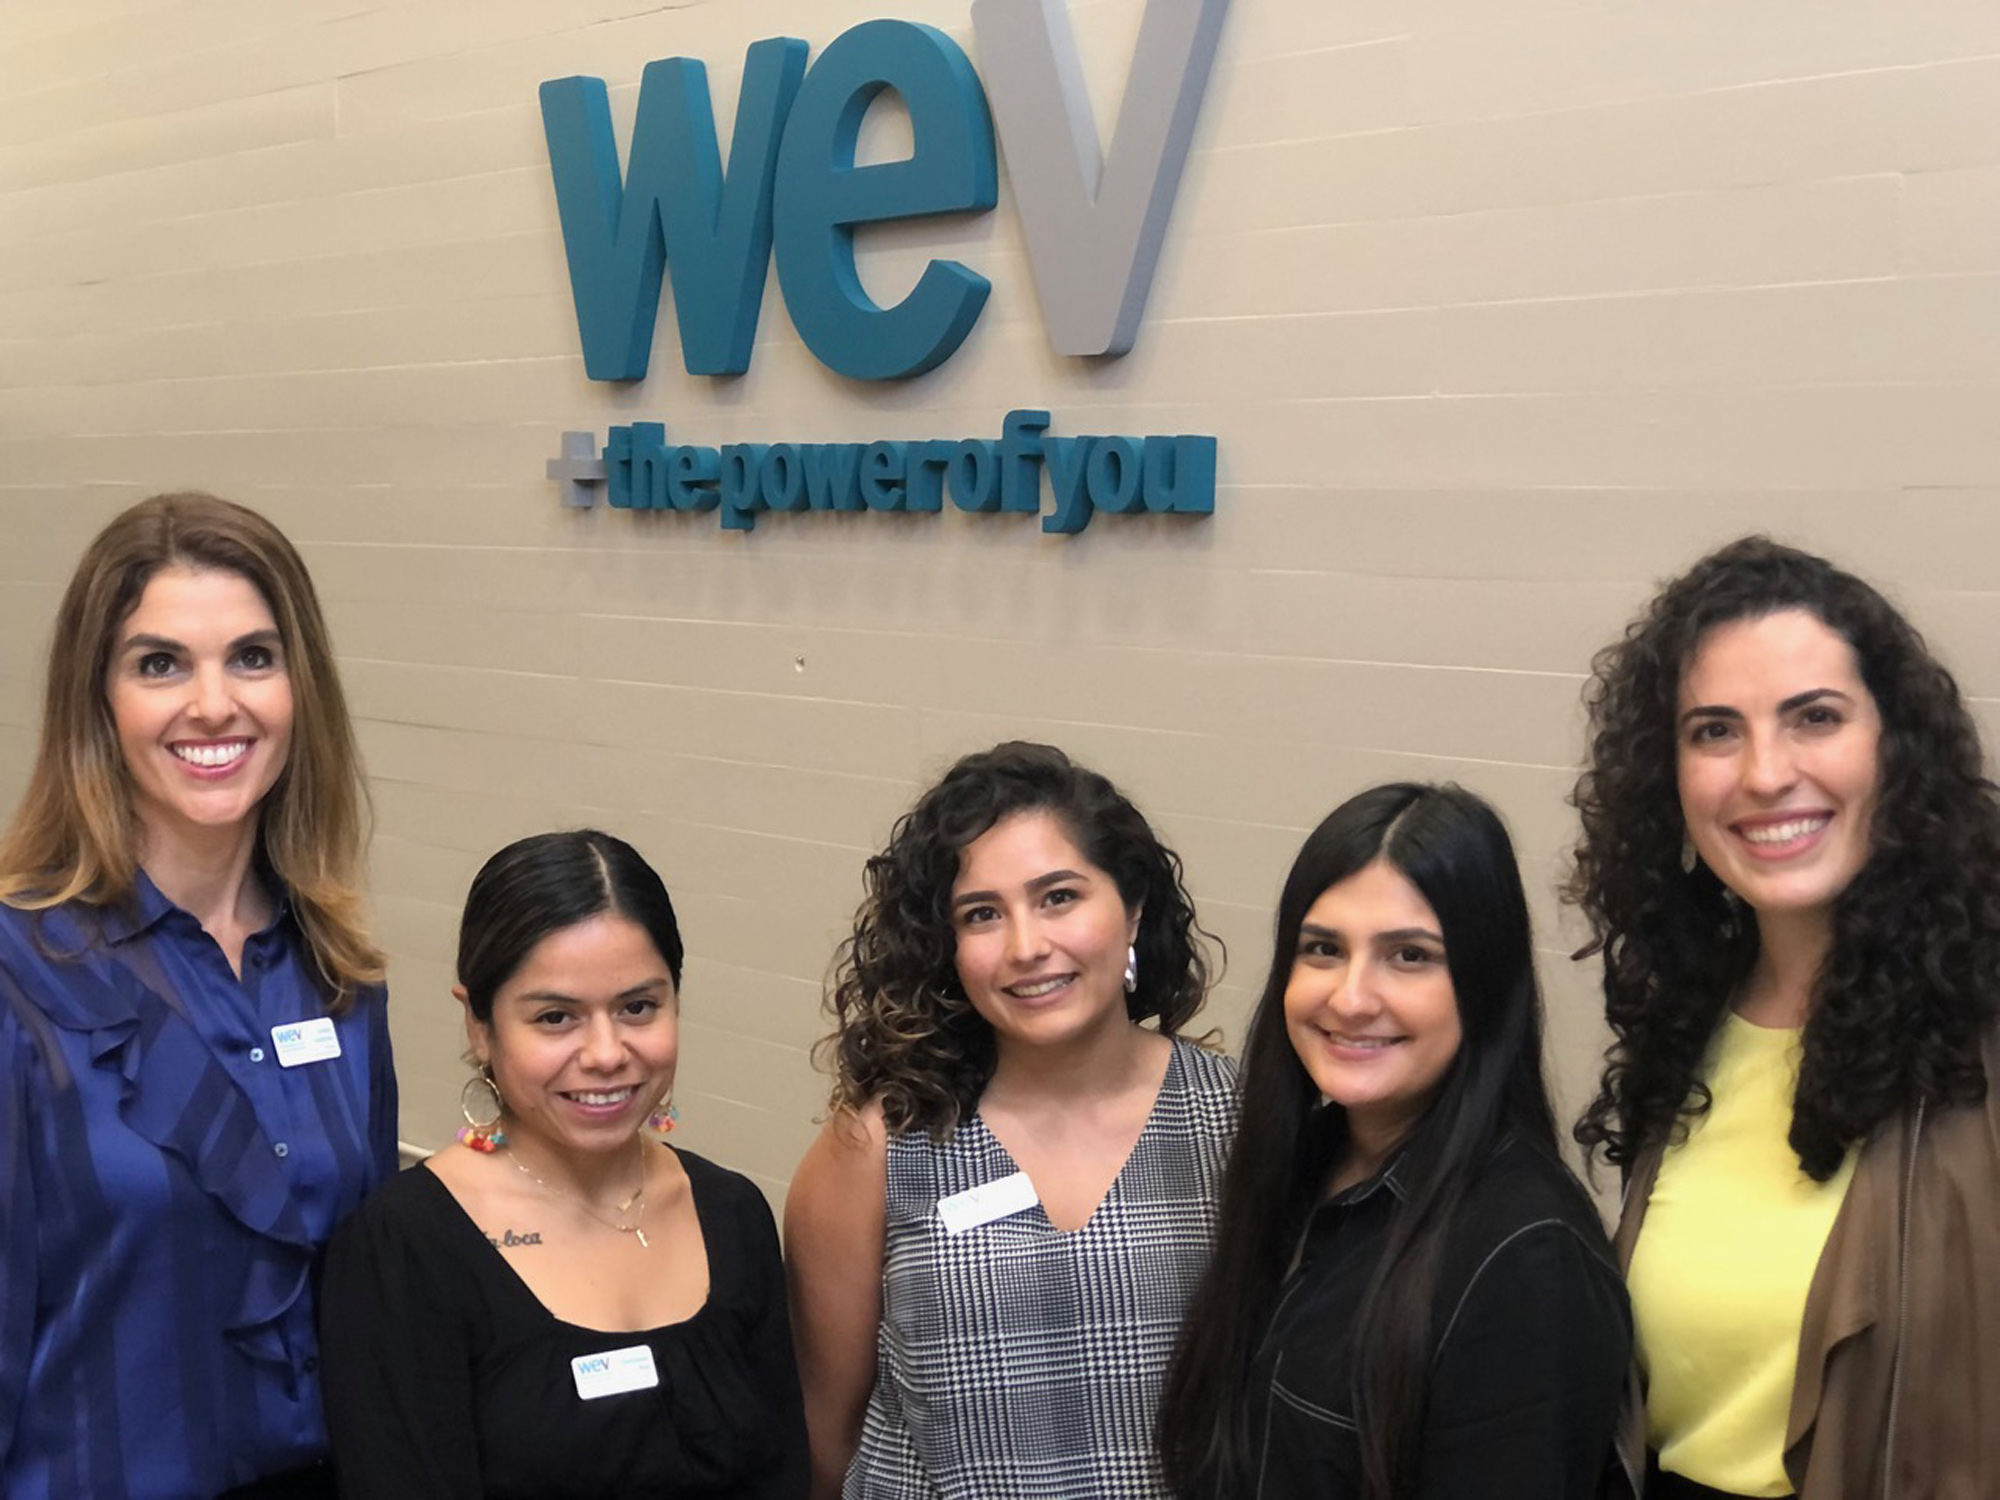 WEV staff members gather for the open house.